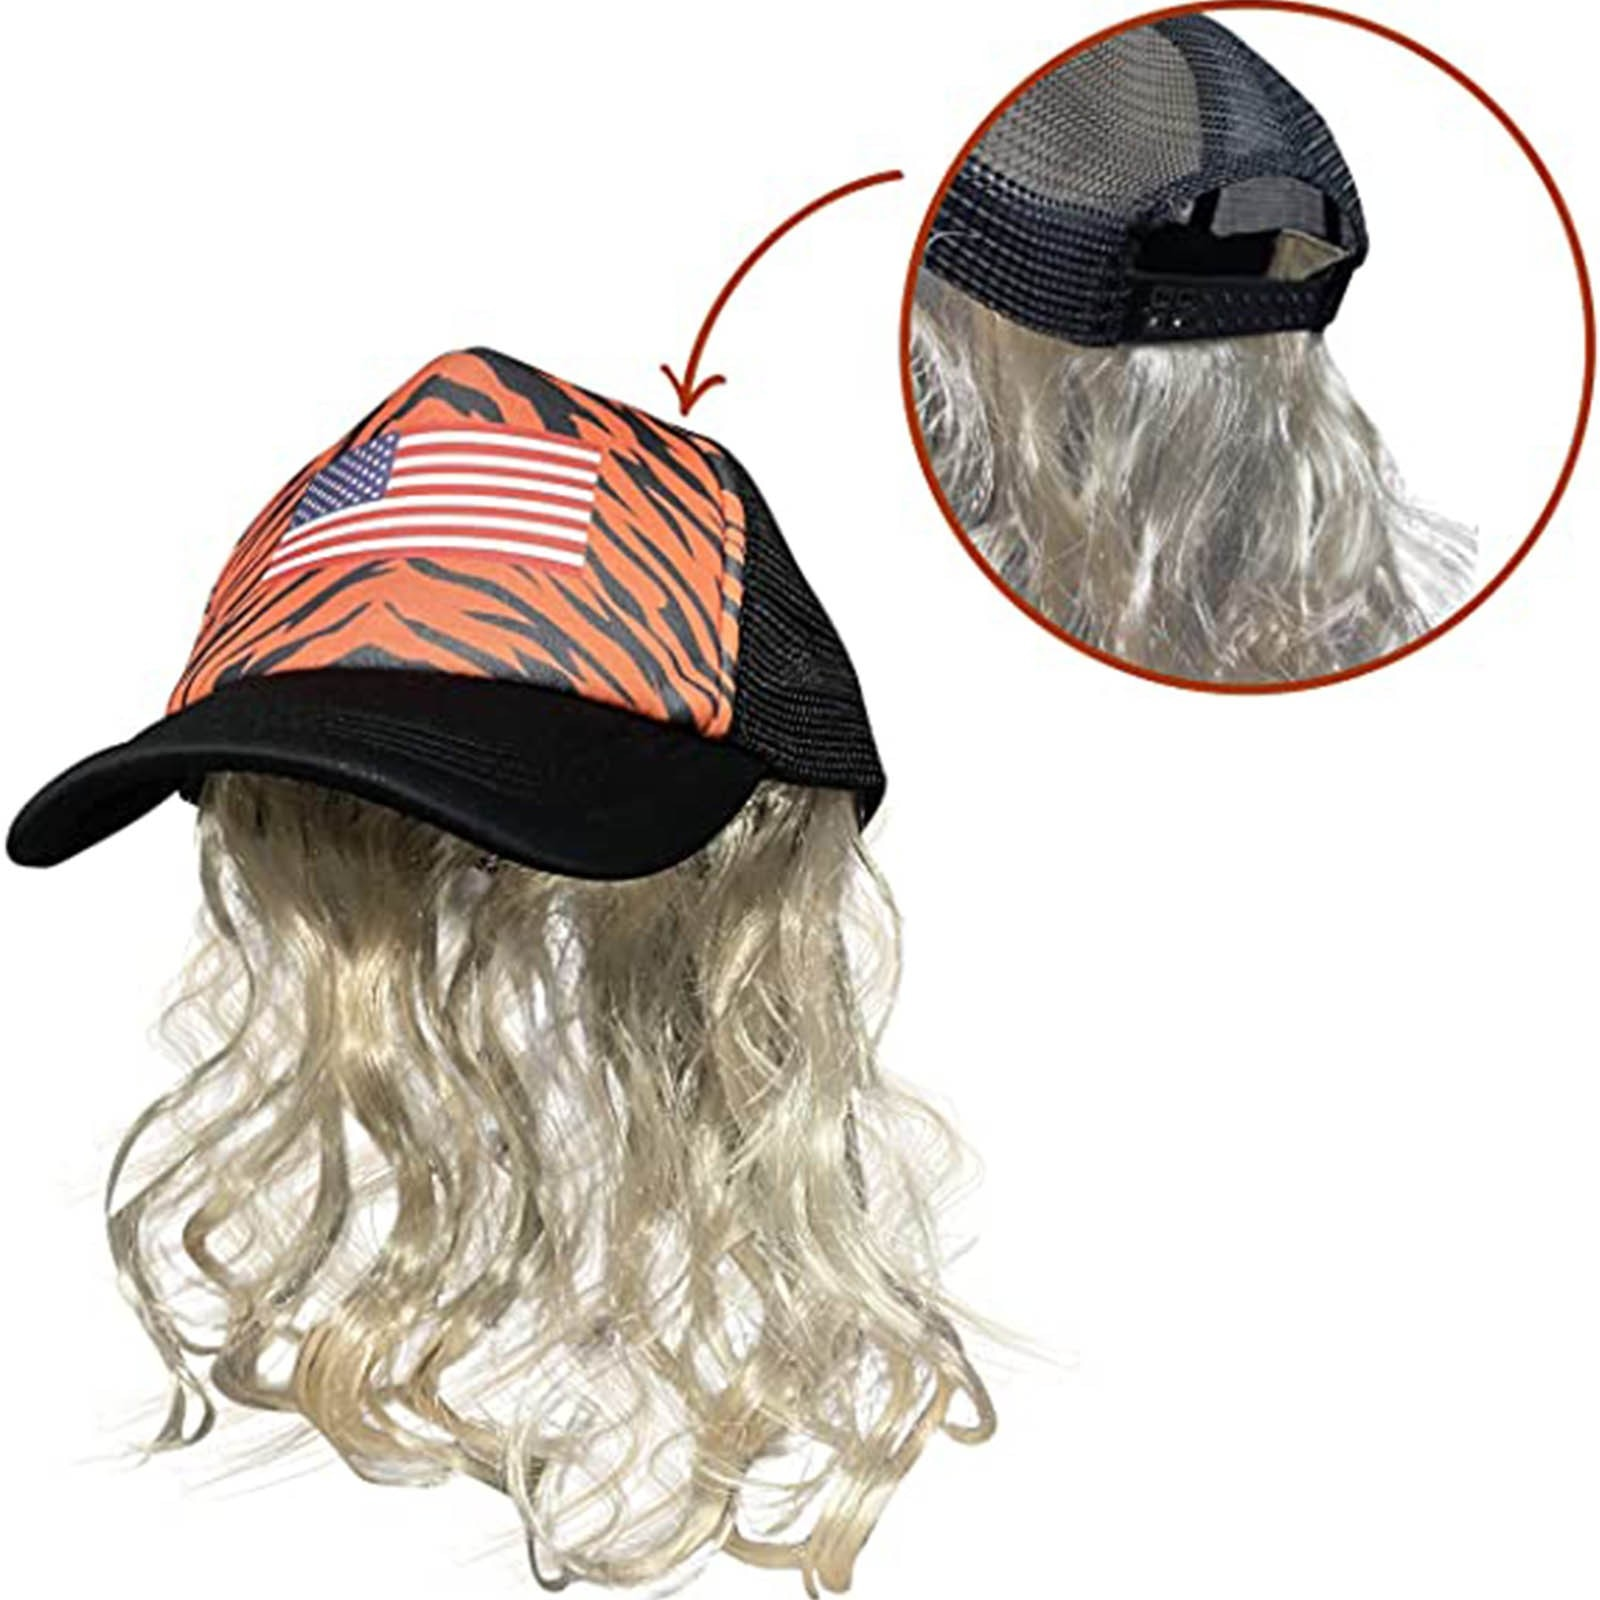 Role-playing Suit Tiger King Costume Set Joe Exotic Cosplay Blonde Wig With Hat, Clip Earrings Mustache Fits Kids And Adults